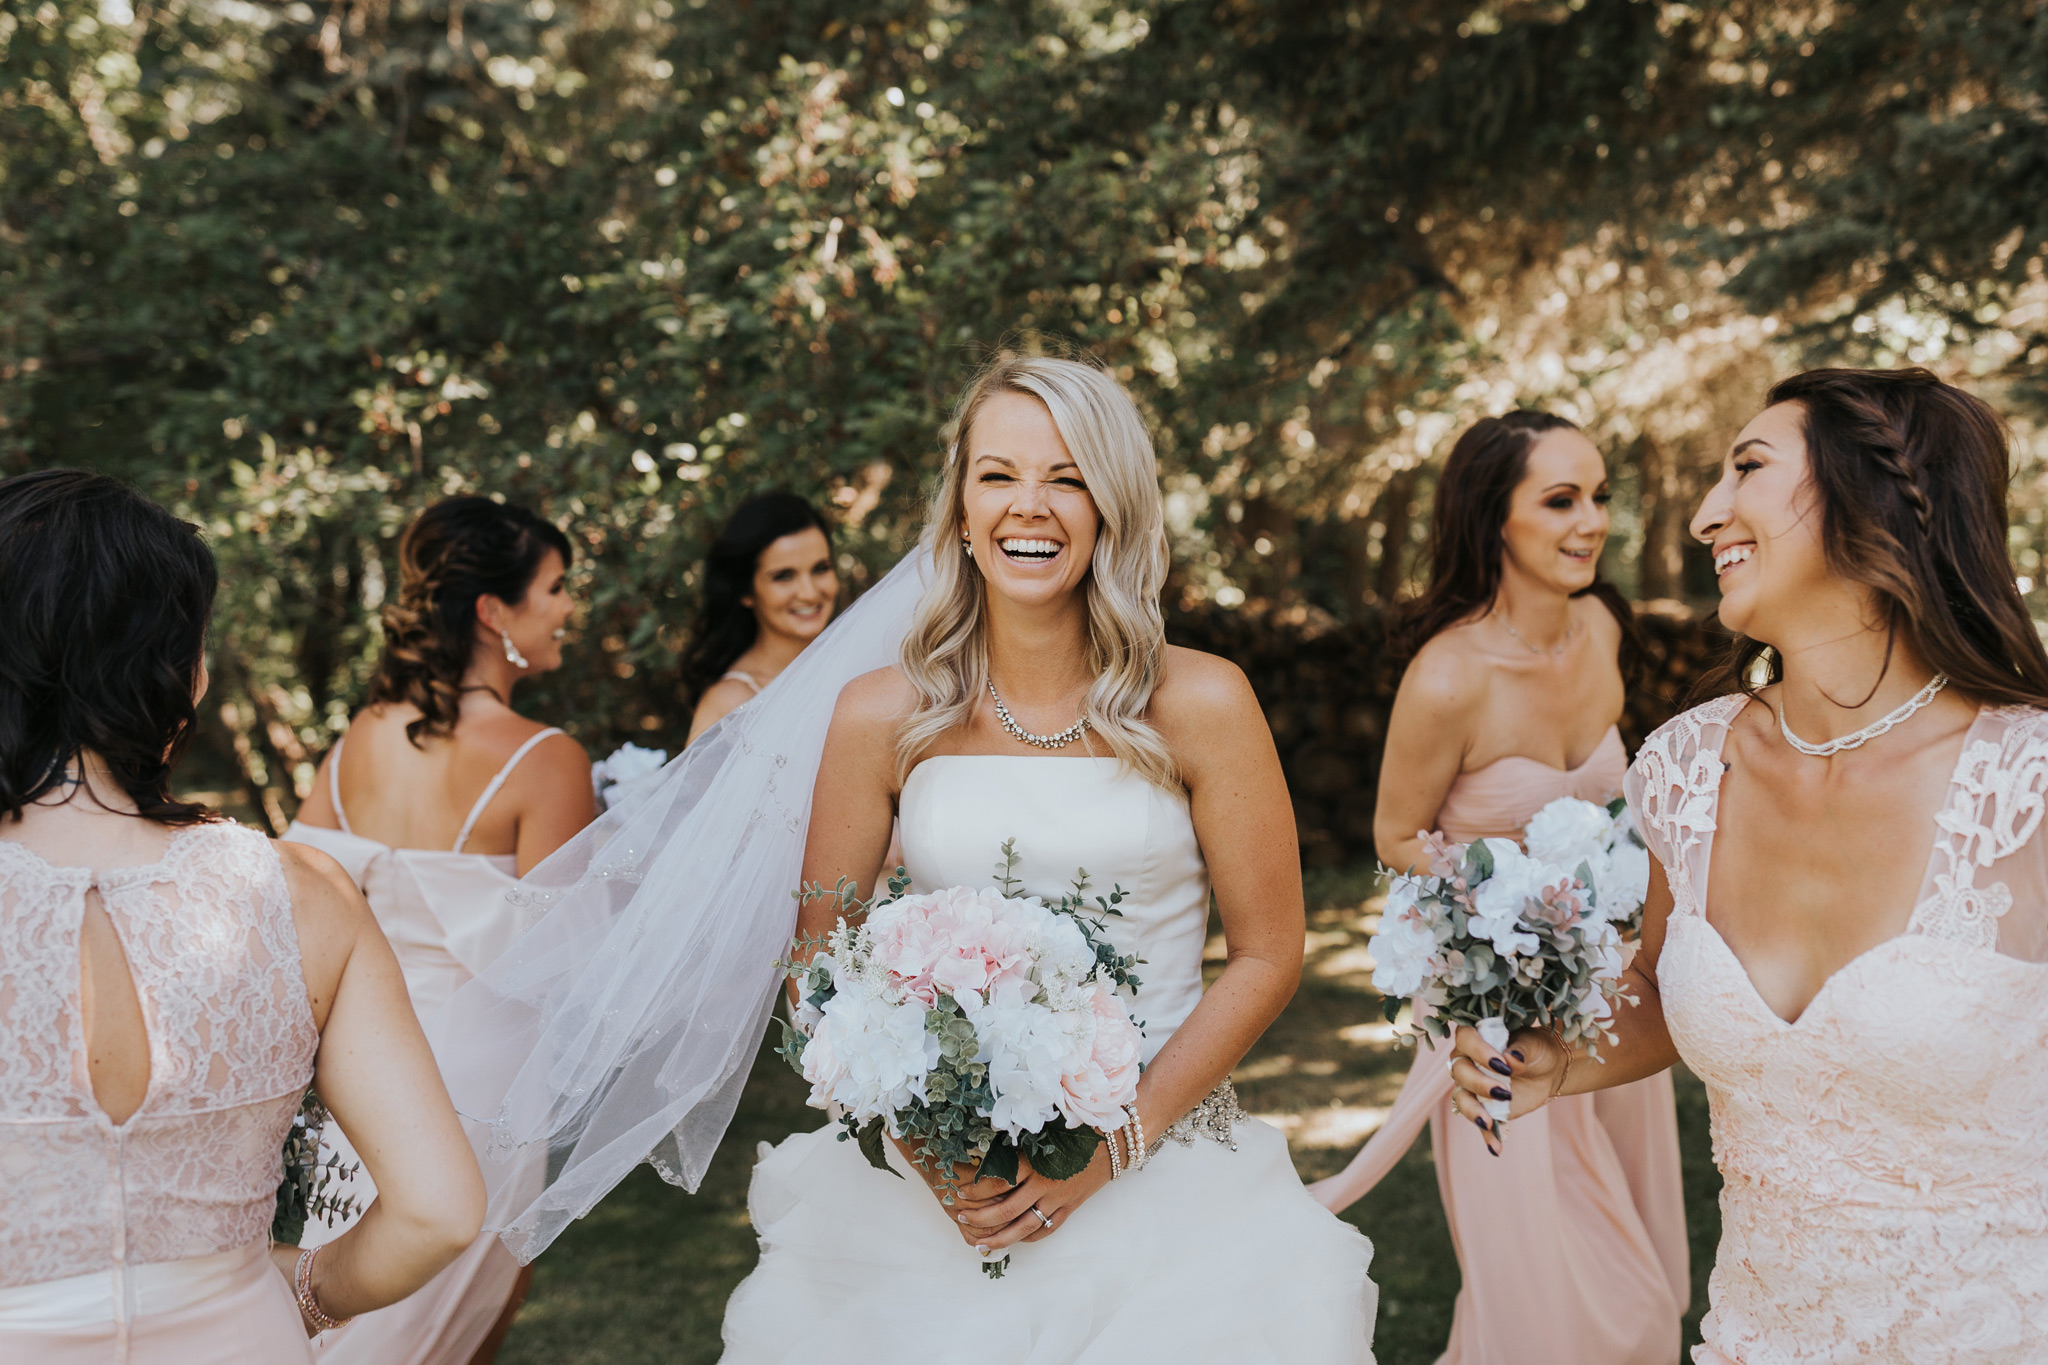 bride stands while bridesmaids run around her